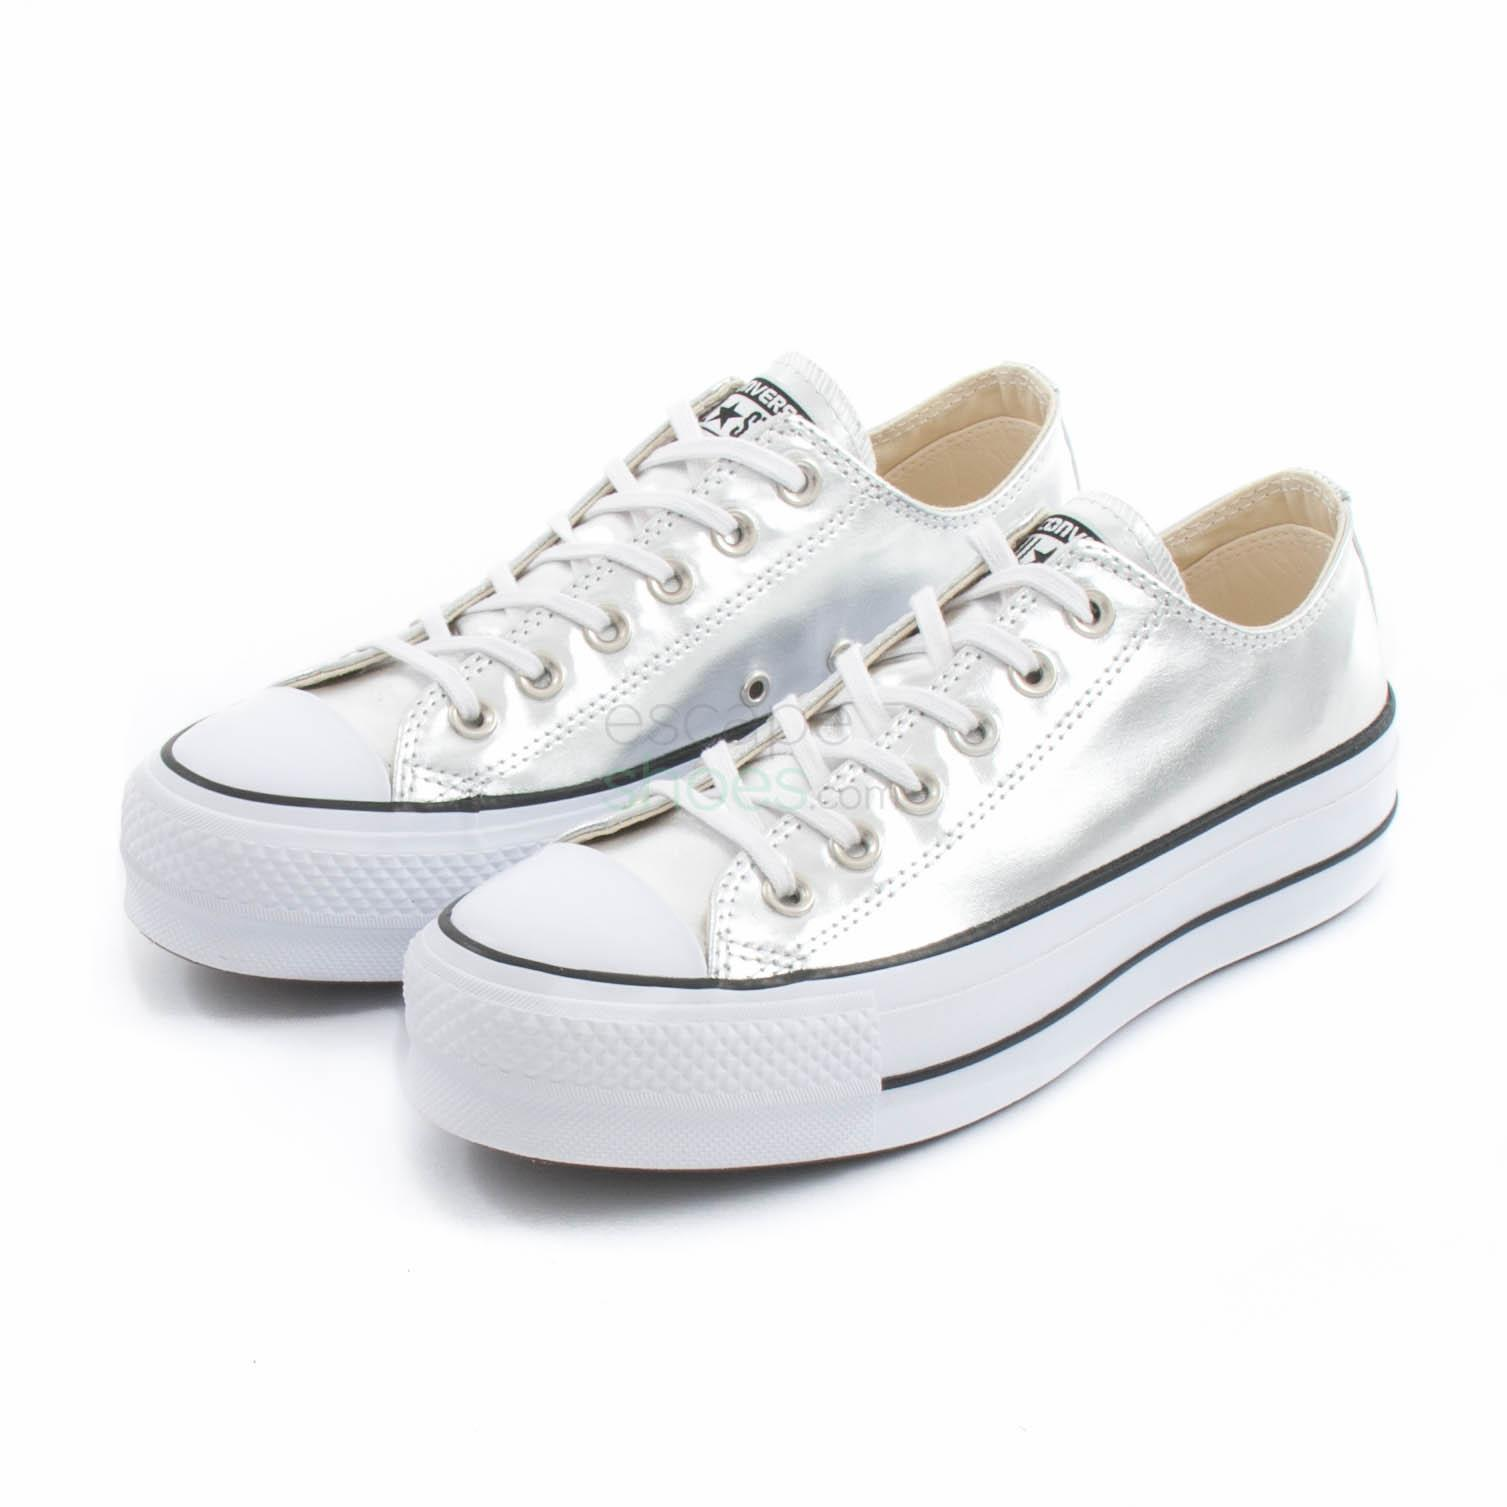 Buy your Sneakers CONVERSE Chuck Taylor All Star Lift Clean 560248C ... 620818c23f